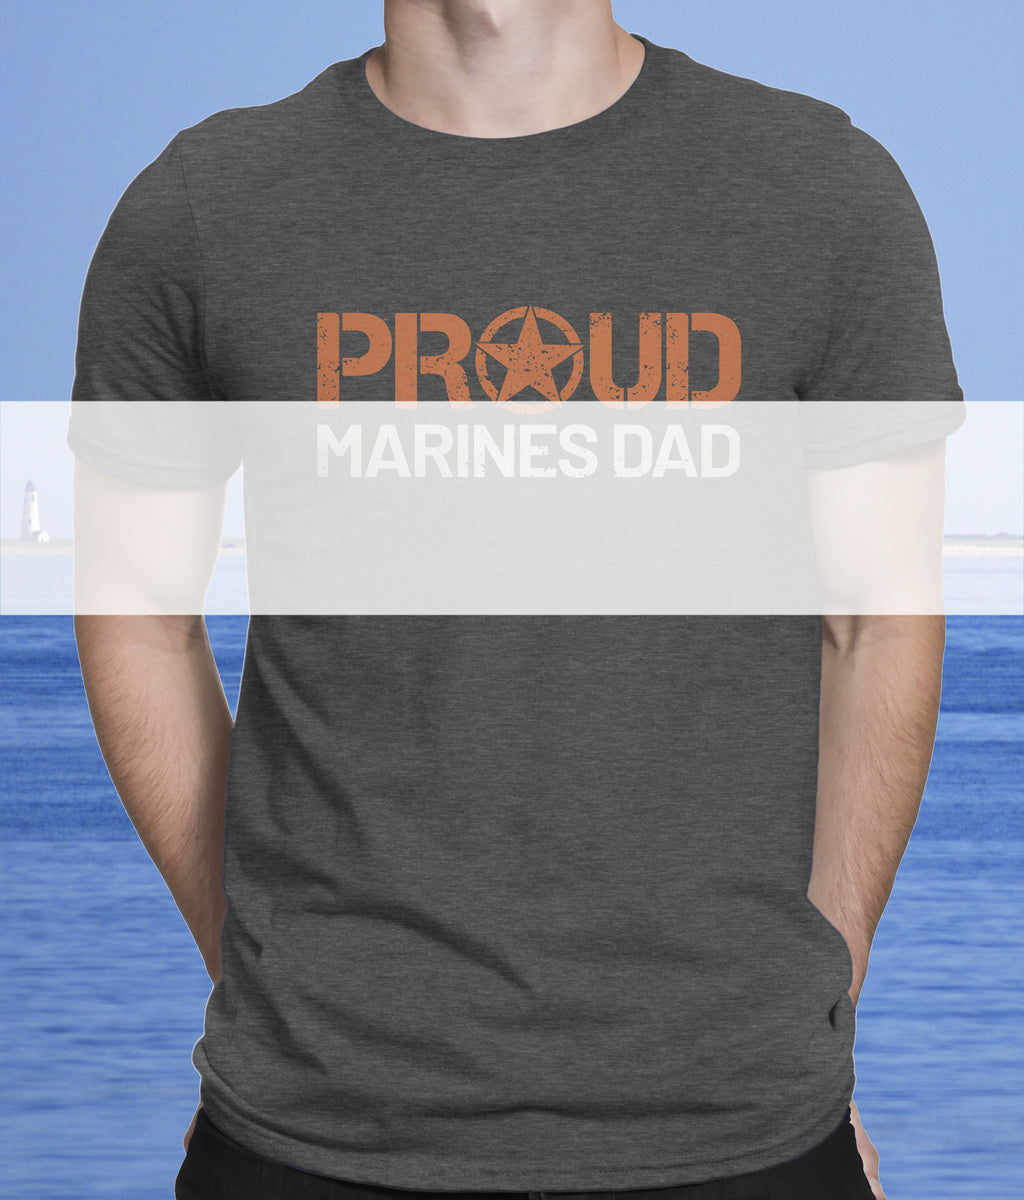 081f8ce1c Military – Island Dog T-Shirt Company